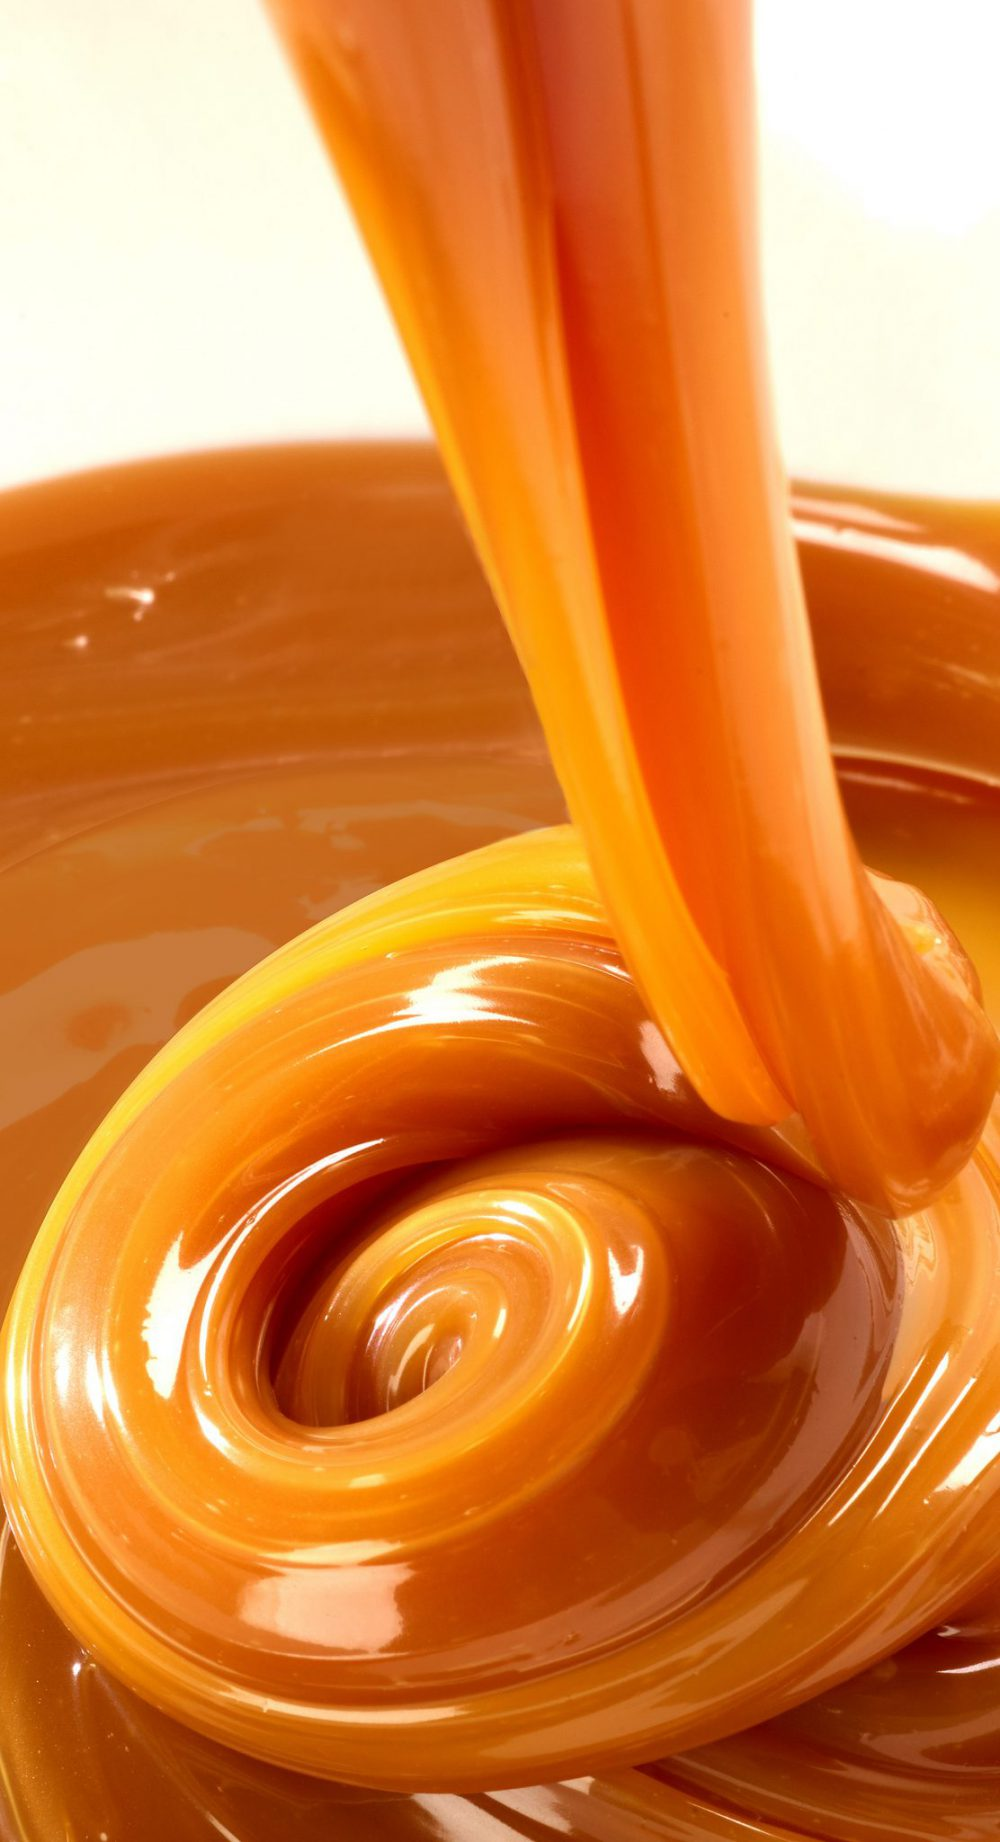 Swirls of Caramel